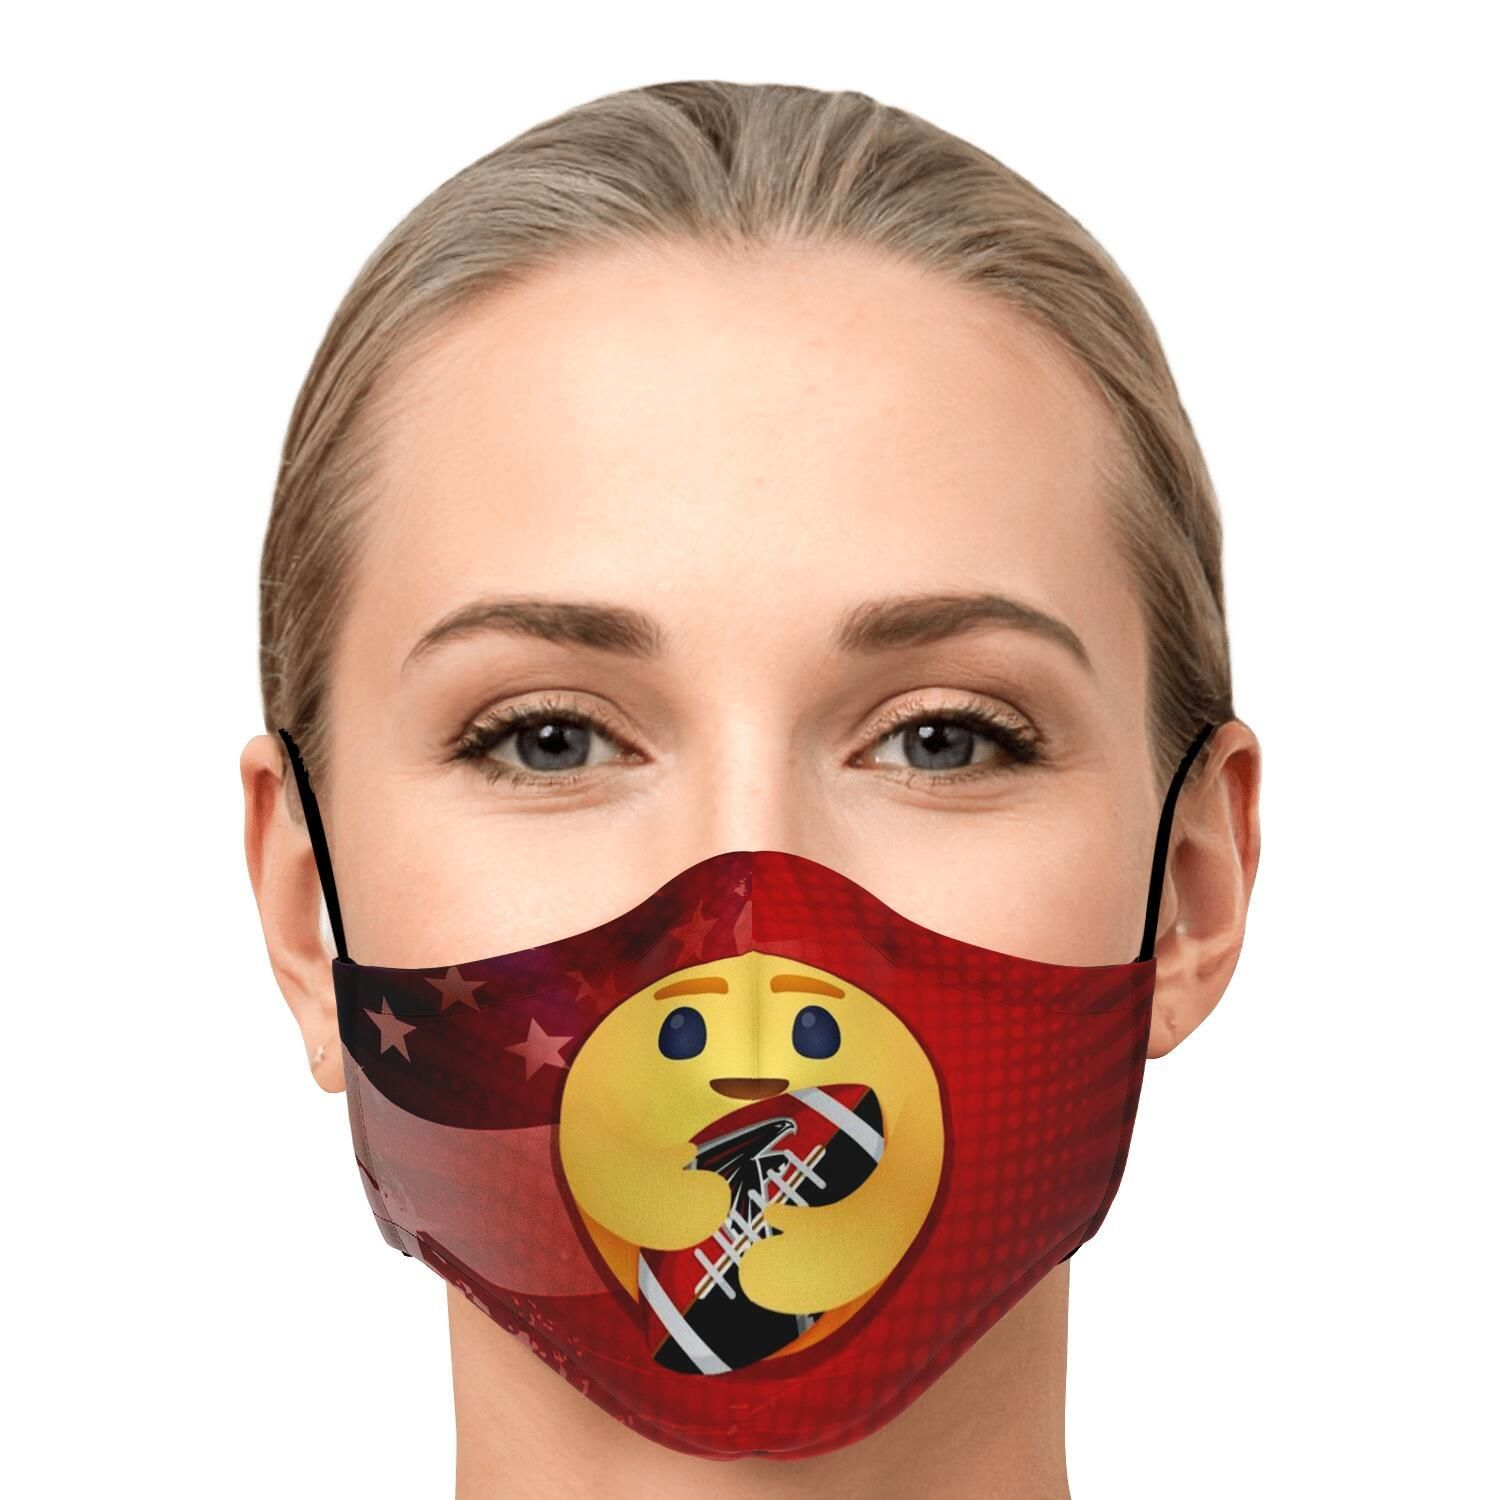 America Is My Home Atlanta Falcons Is My Love Face Mask Nfl T Shirts Store In 2020 Nfl T Shirts Face Mask Tshirt Store